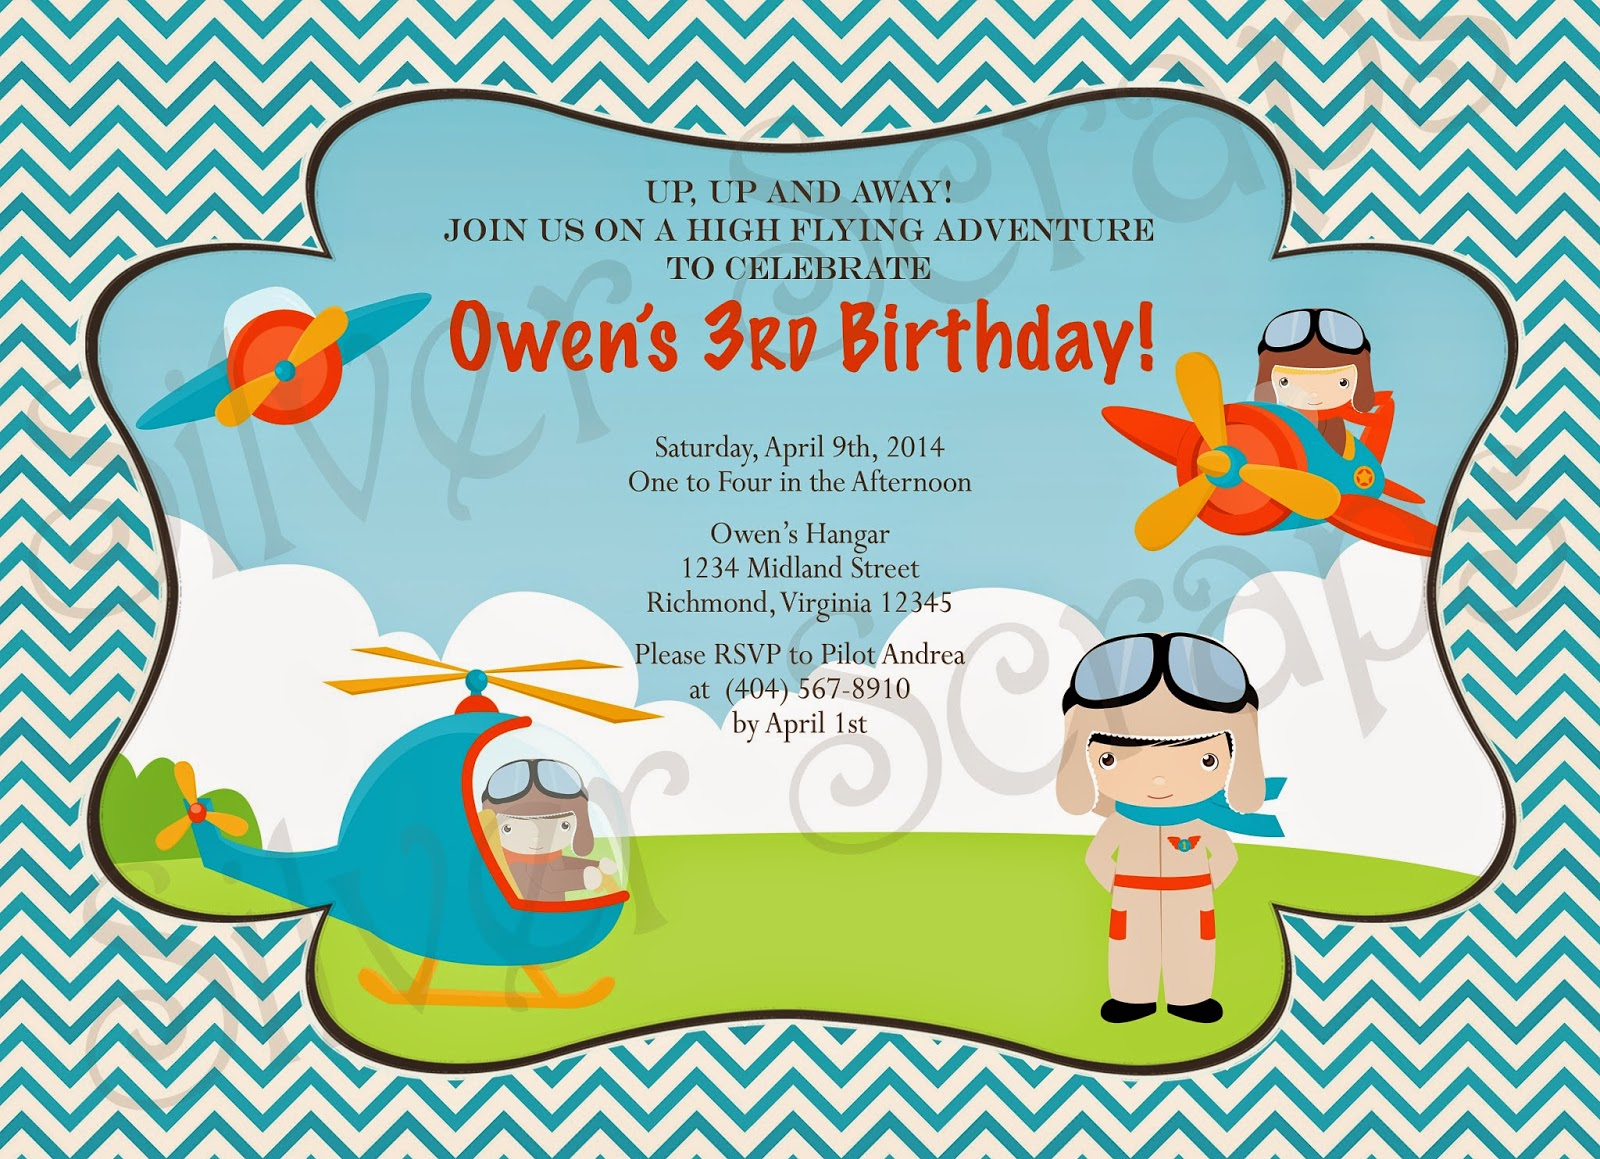 Up, Up, and Away - Custom Digital Airplane Birthday Invitation -Boy Plane Fly Flying Helicopter Pilot Red Blue Yellow - 5 Printable Designs aviator blue chevron red yellow orange helicopter goggles